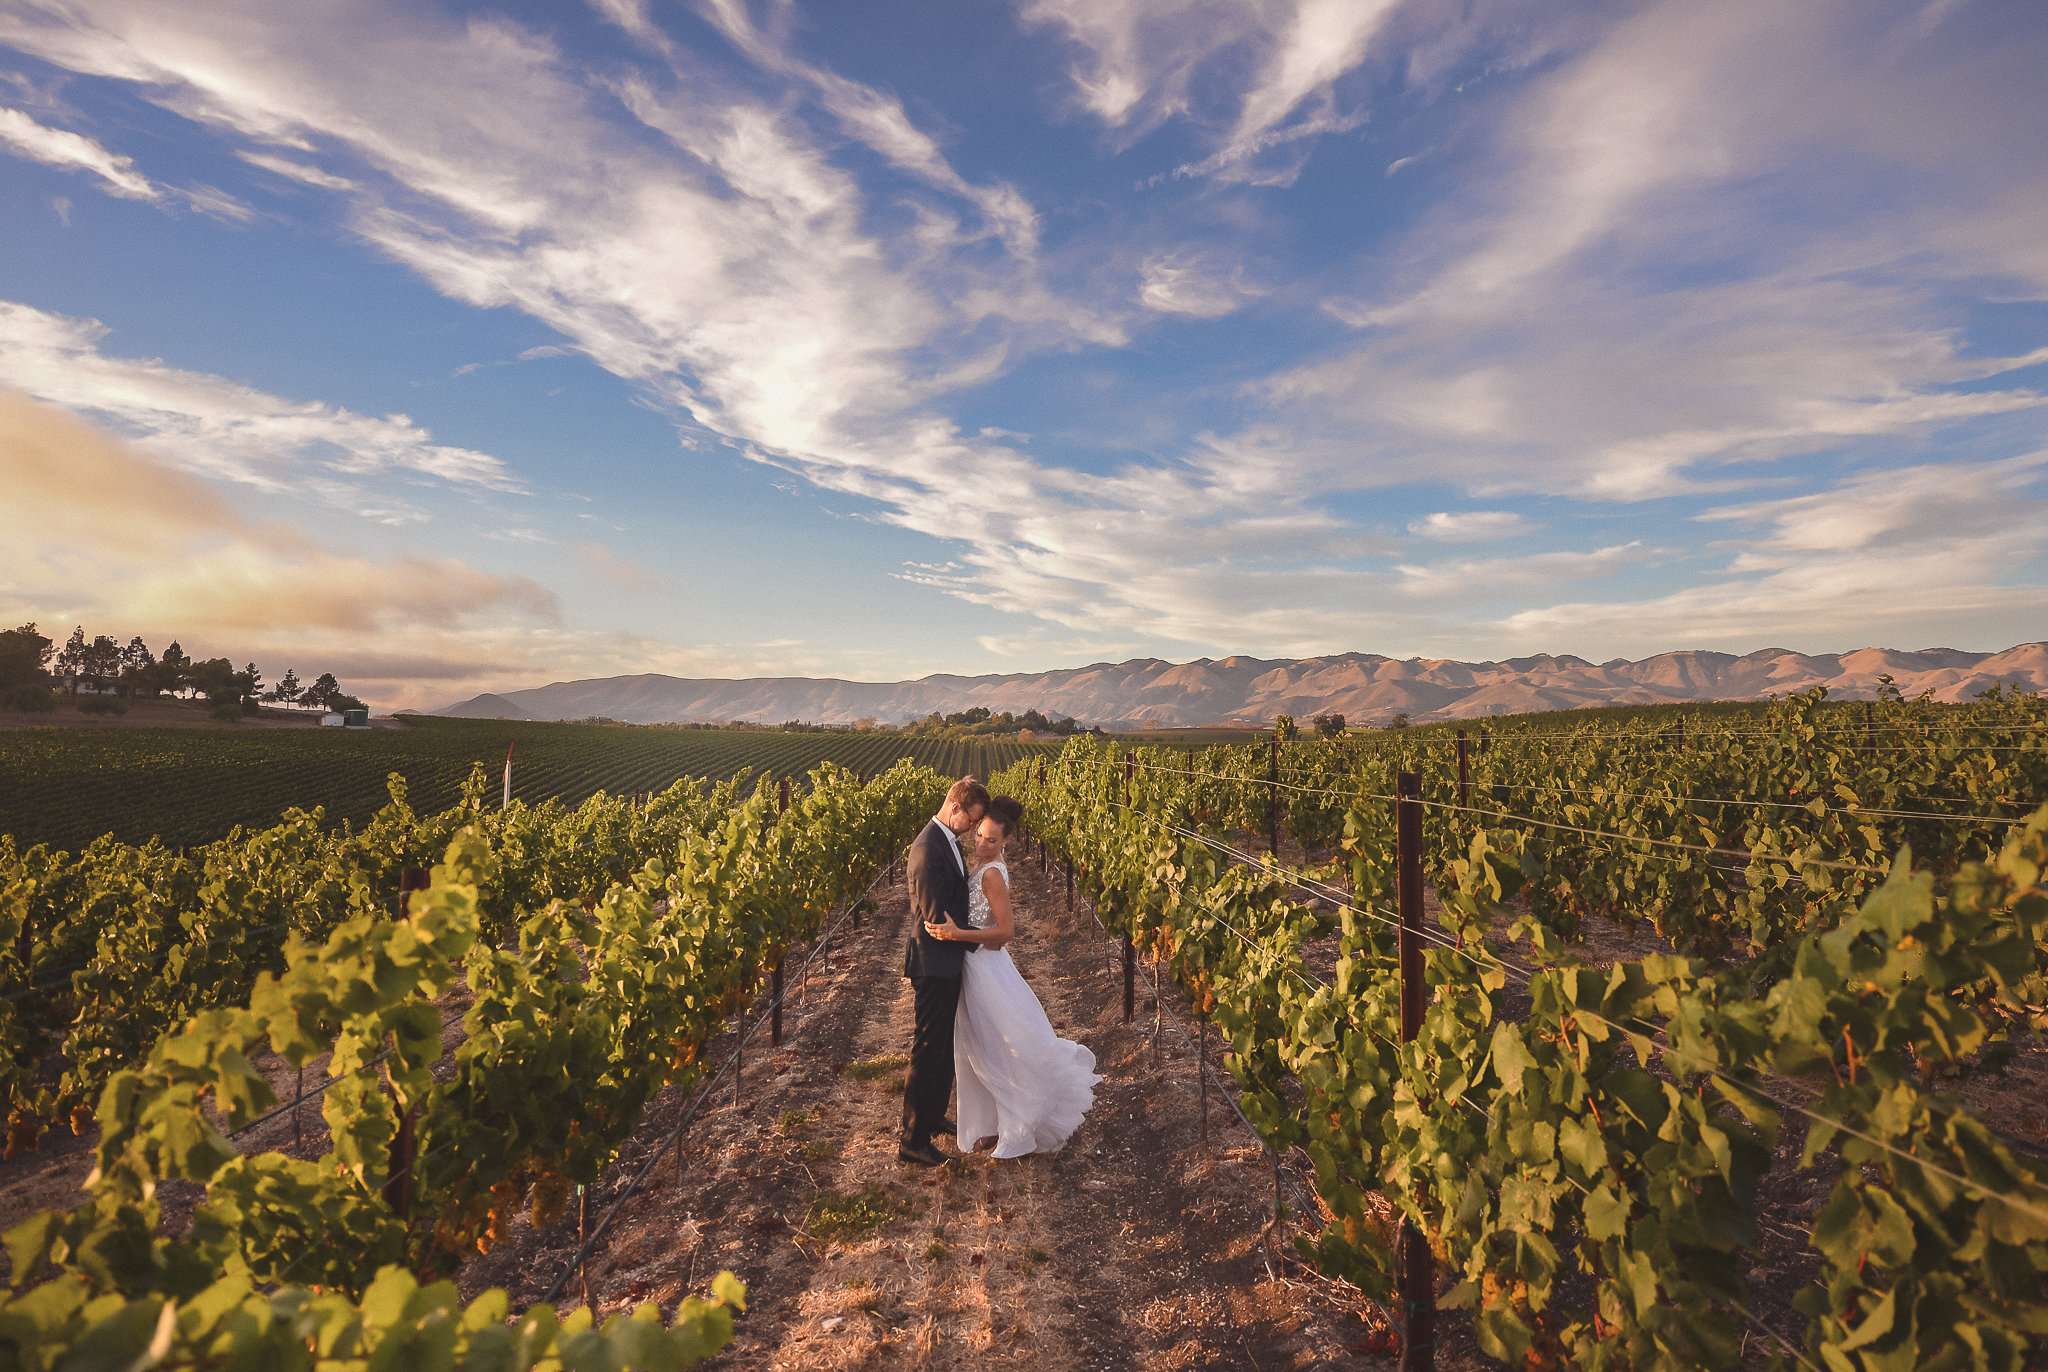 Sneak Peek: K+S Greengate Ranch & Vineyard Wedding in San Luis Obispo, CA